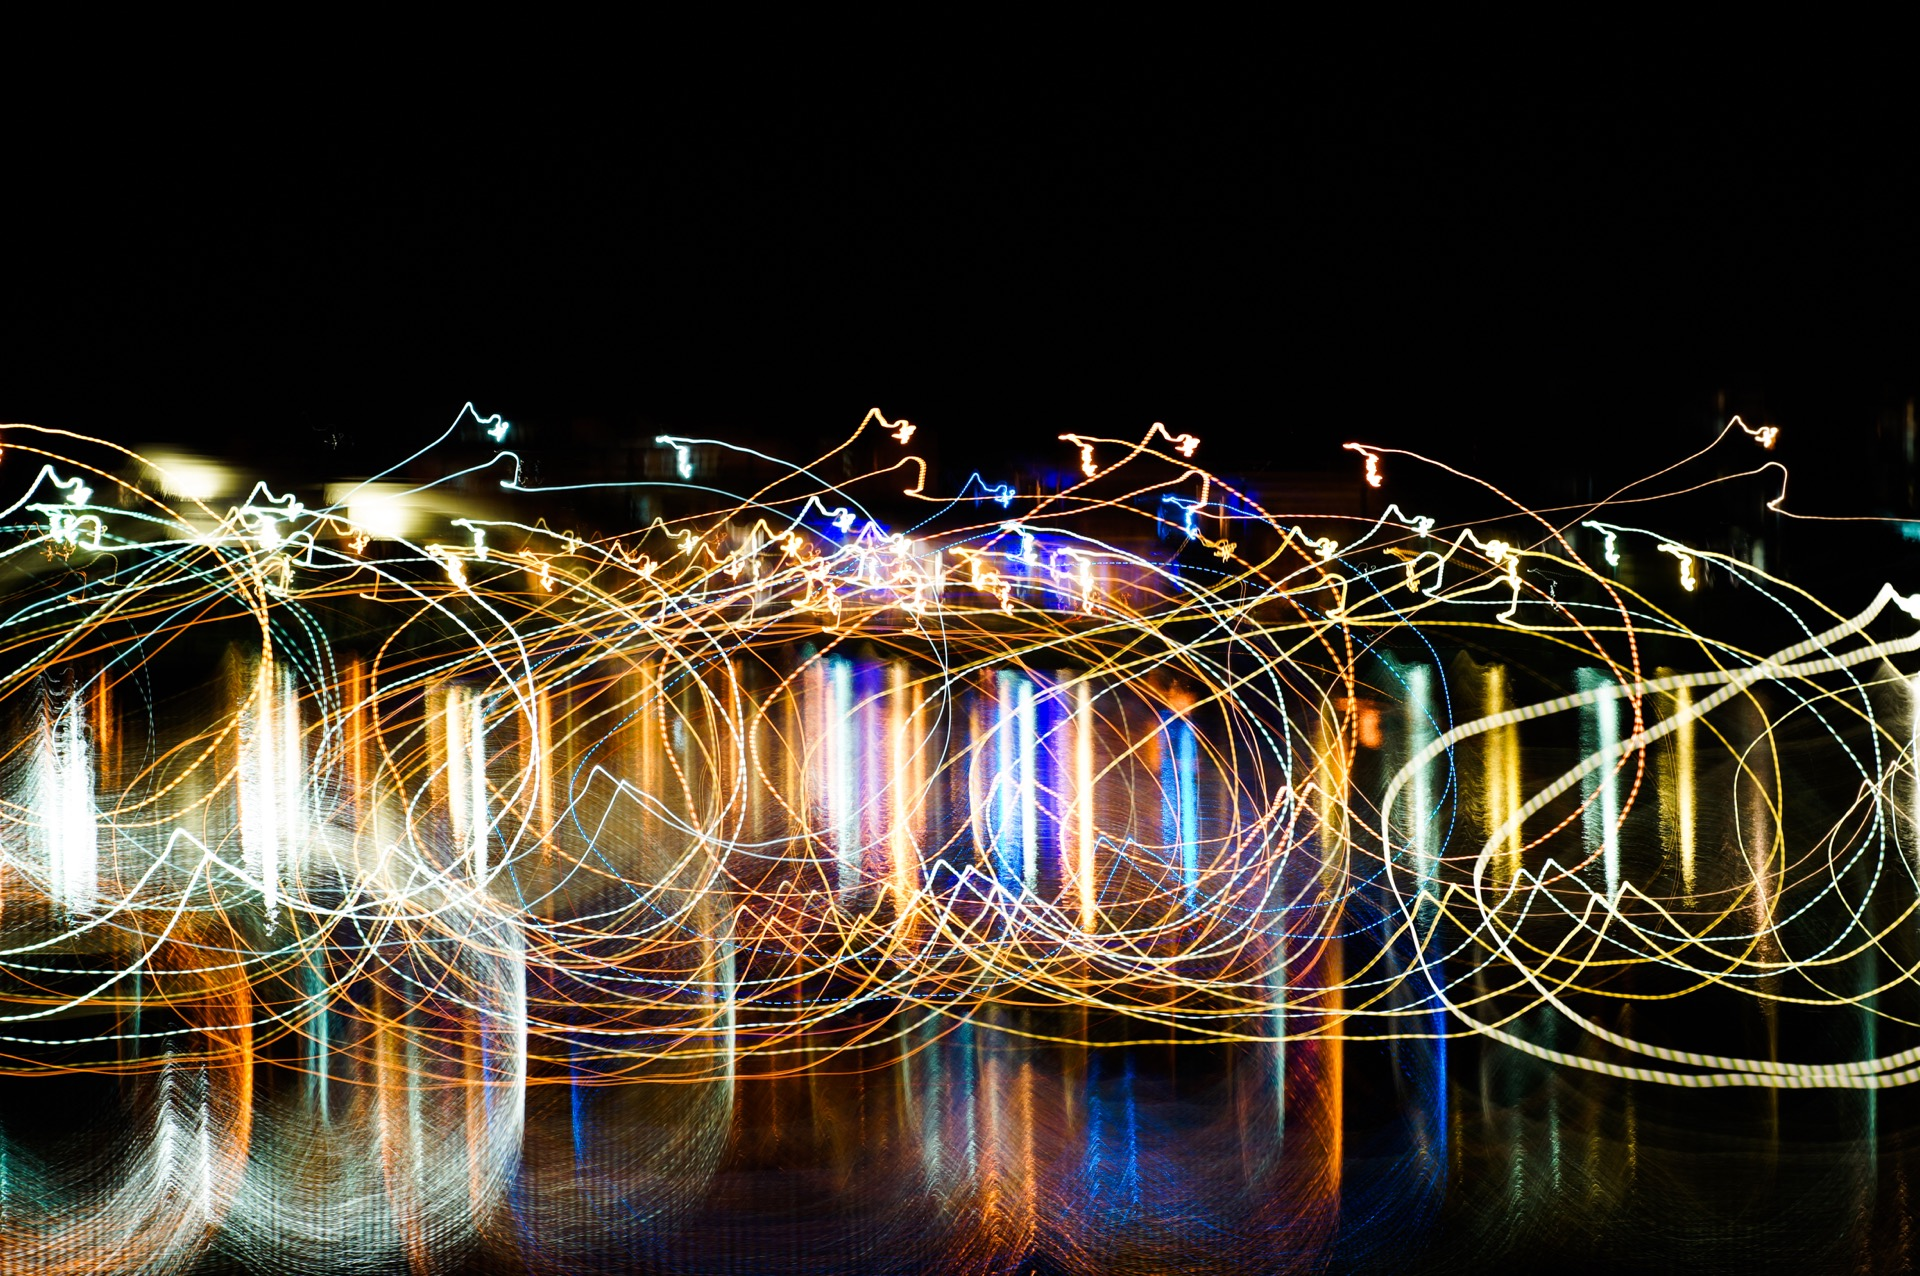 An abstract picture showing purse shapes using light painting technique with vivid mixed rainbow colors on a black background